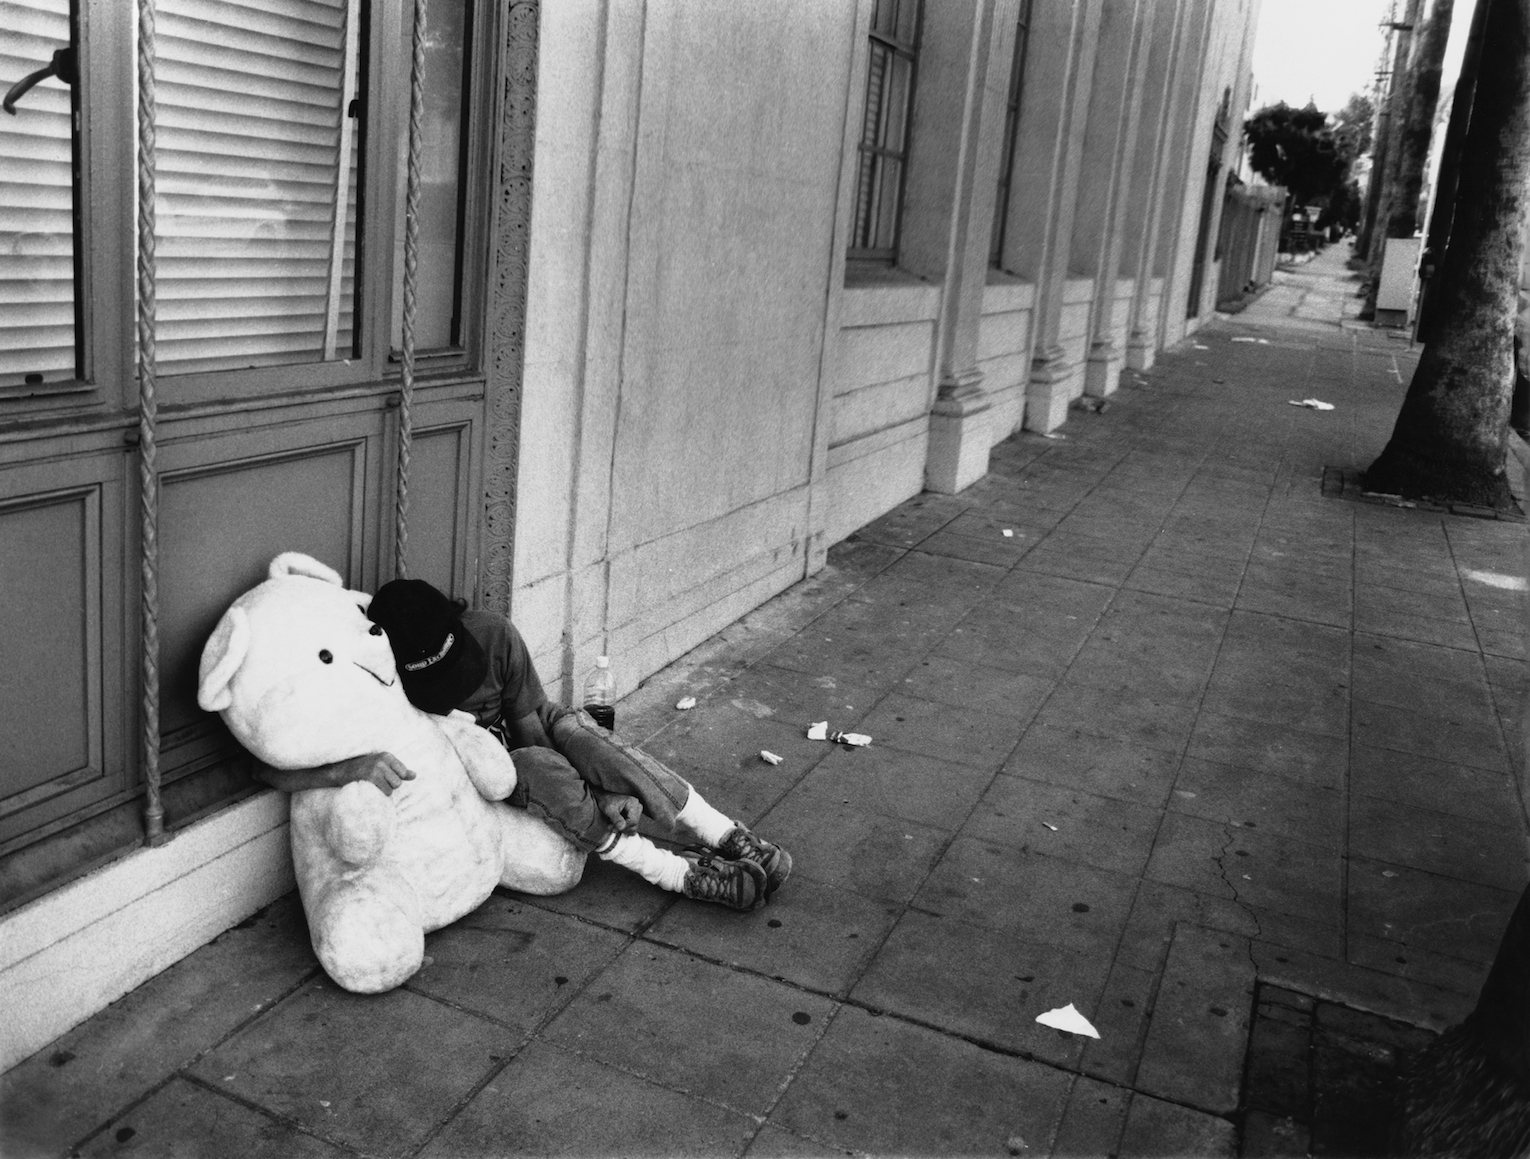 homeless wit teddy bear.jpg